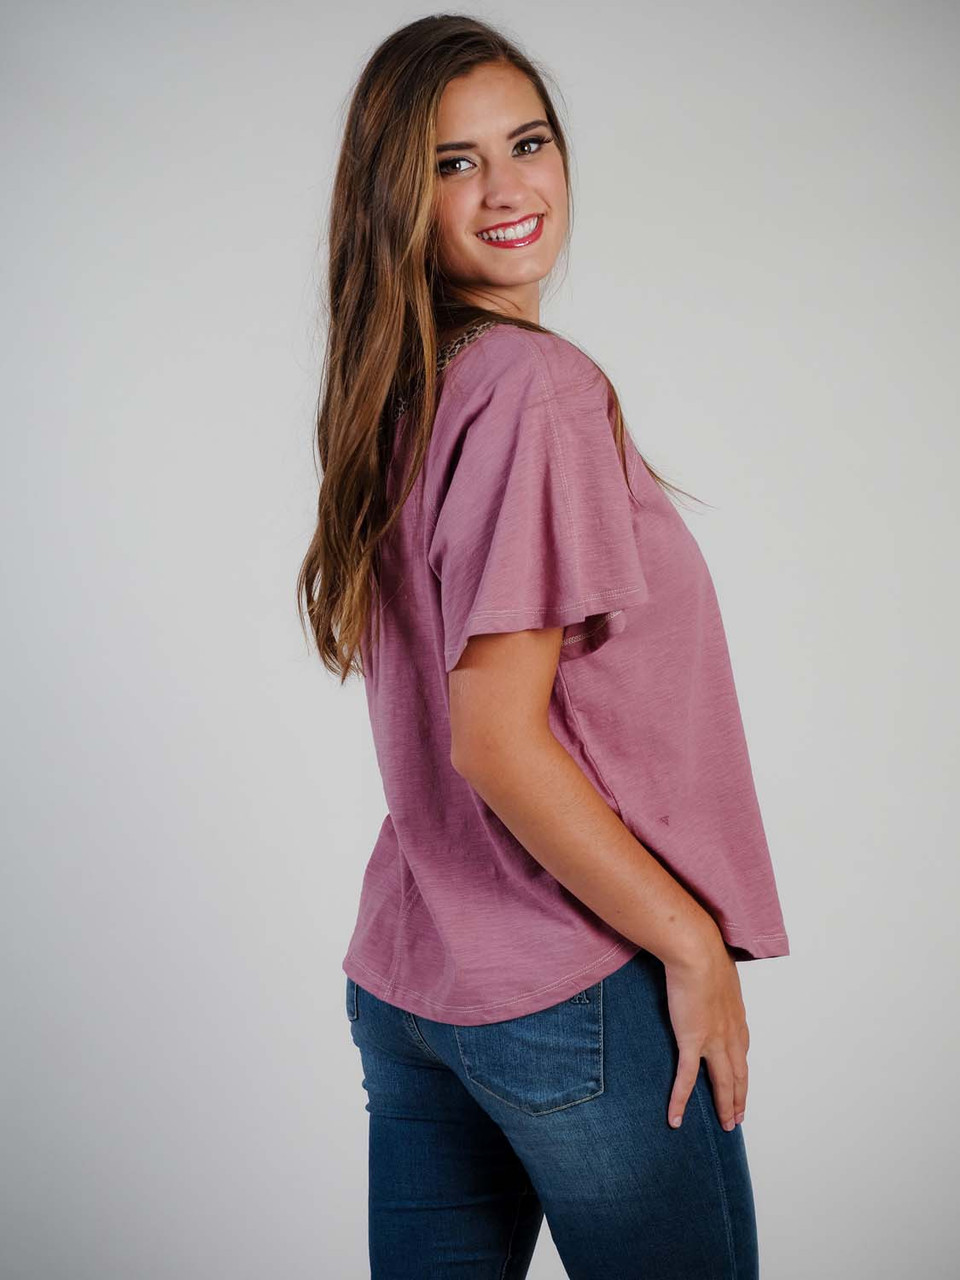 Mauve T-shirt with over sized short sleeves, leopard print detail around the crew neckline